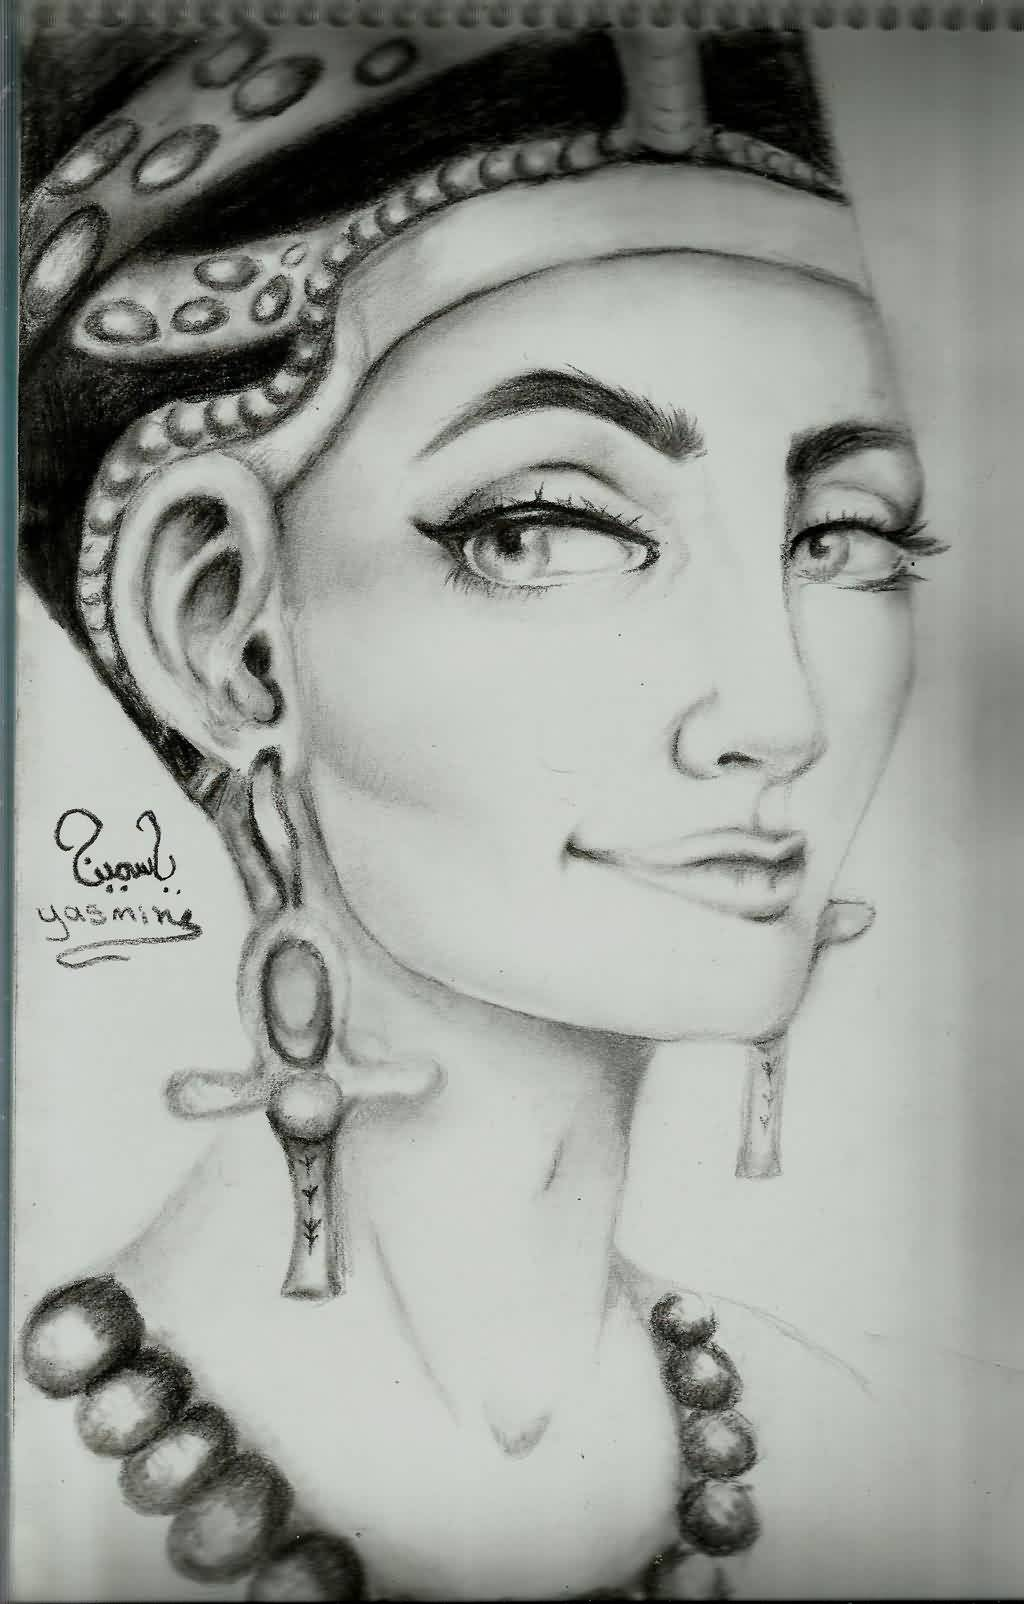 Smiling Queen Nefertiti Tattoo Photo